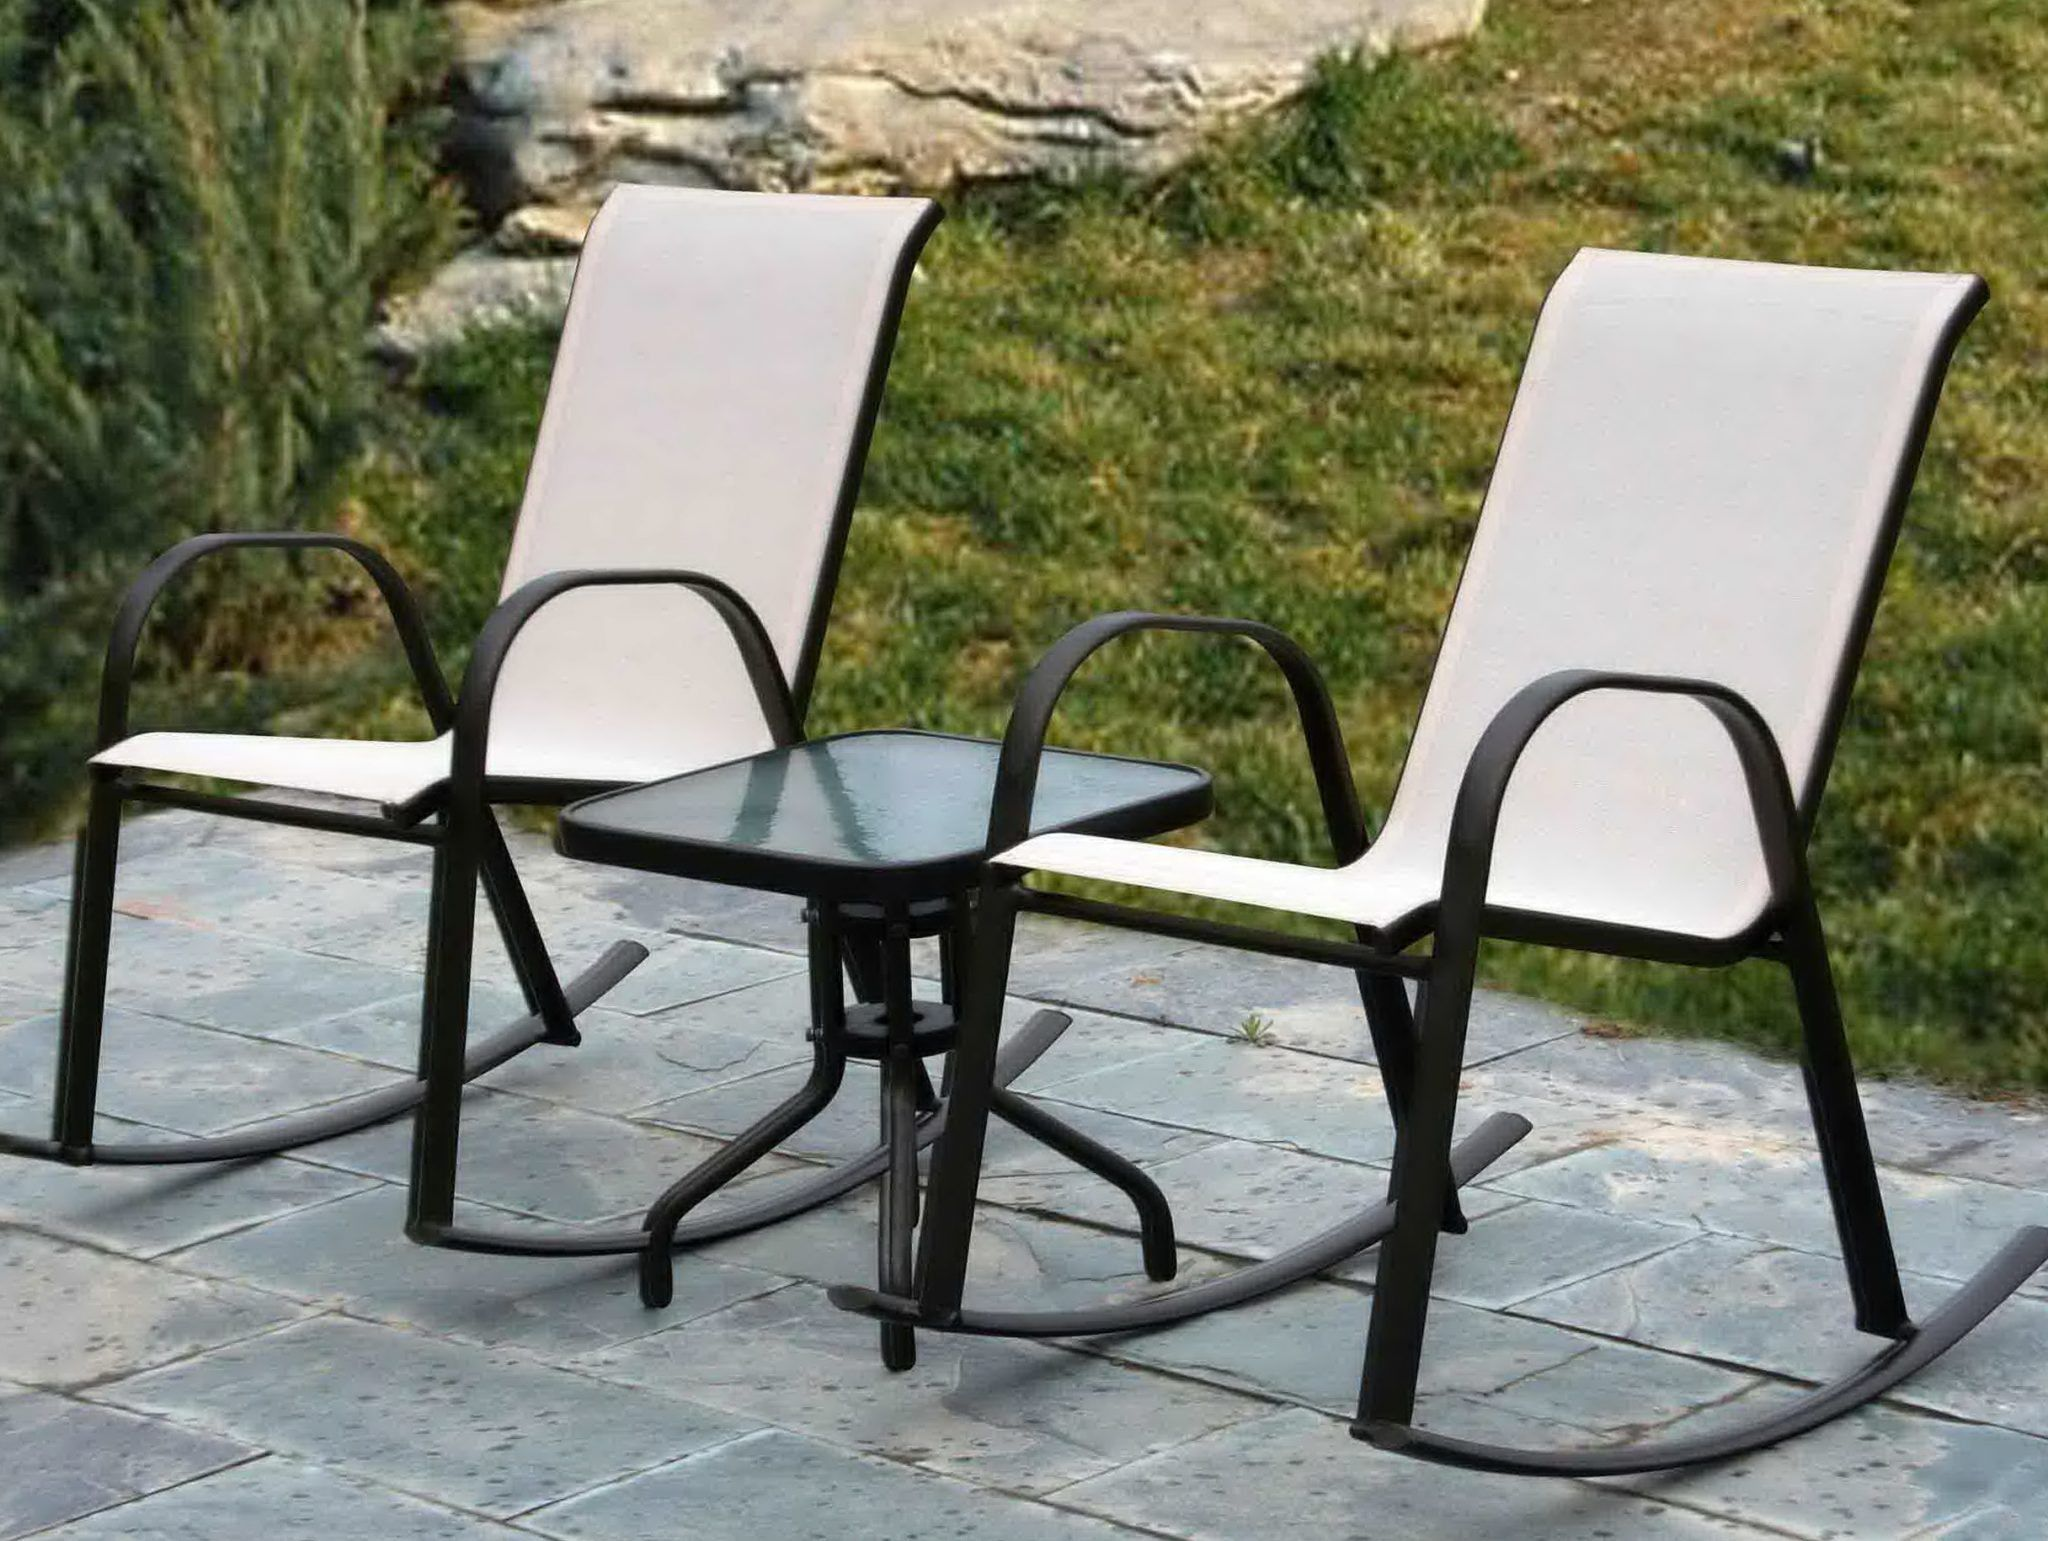 Comfortable Patio Furniture Without Cushions Patio Ideas Patio